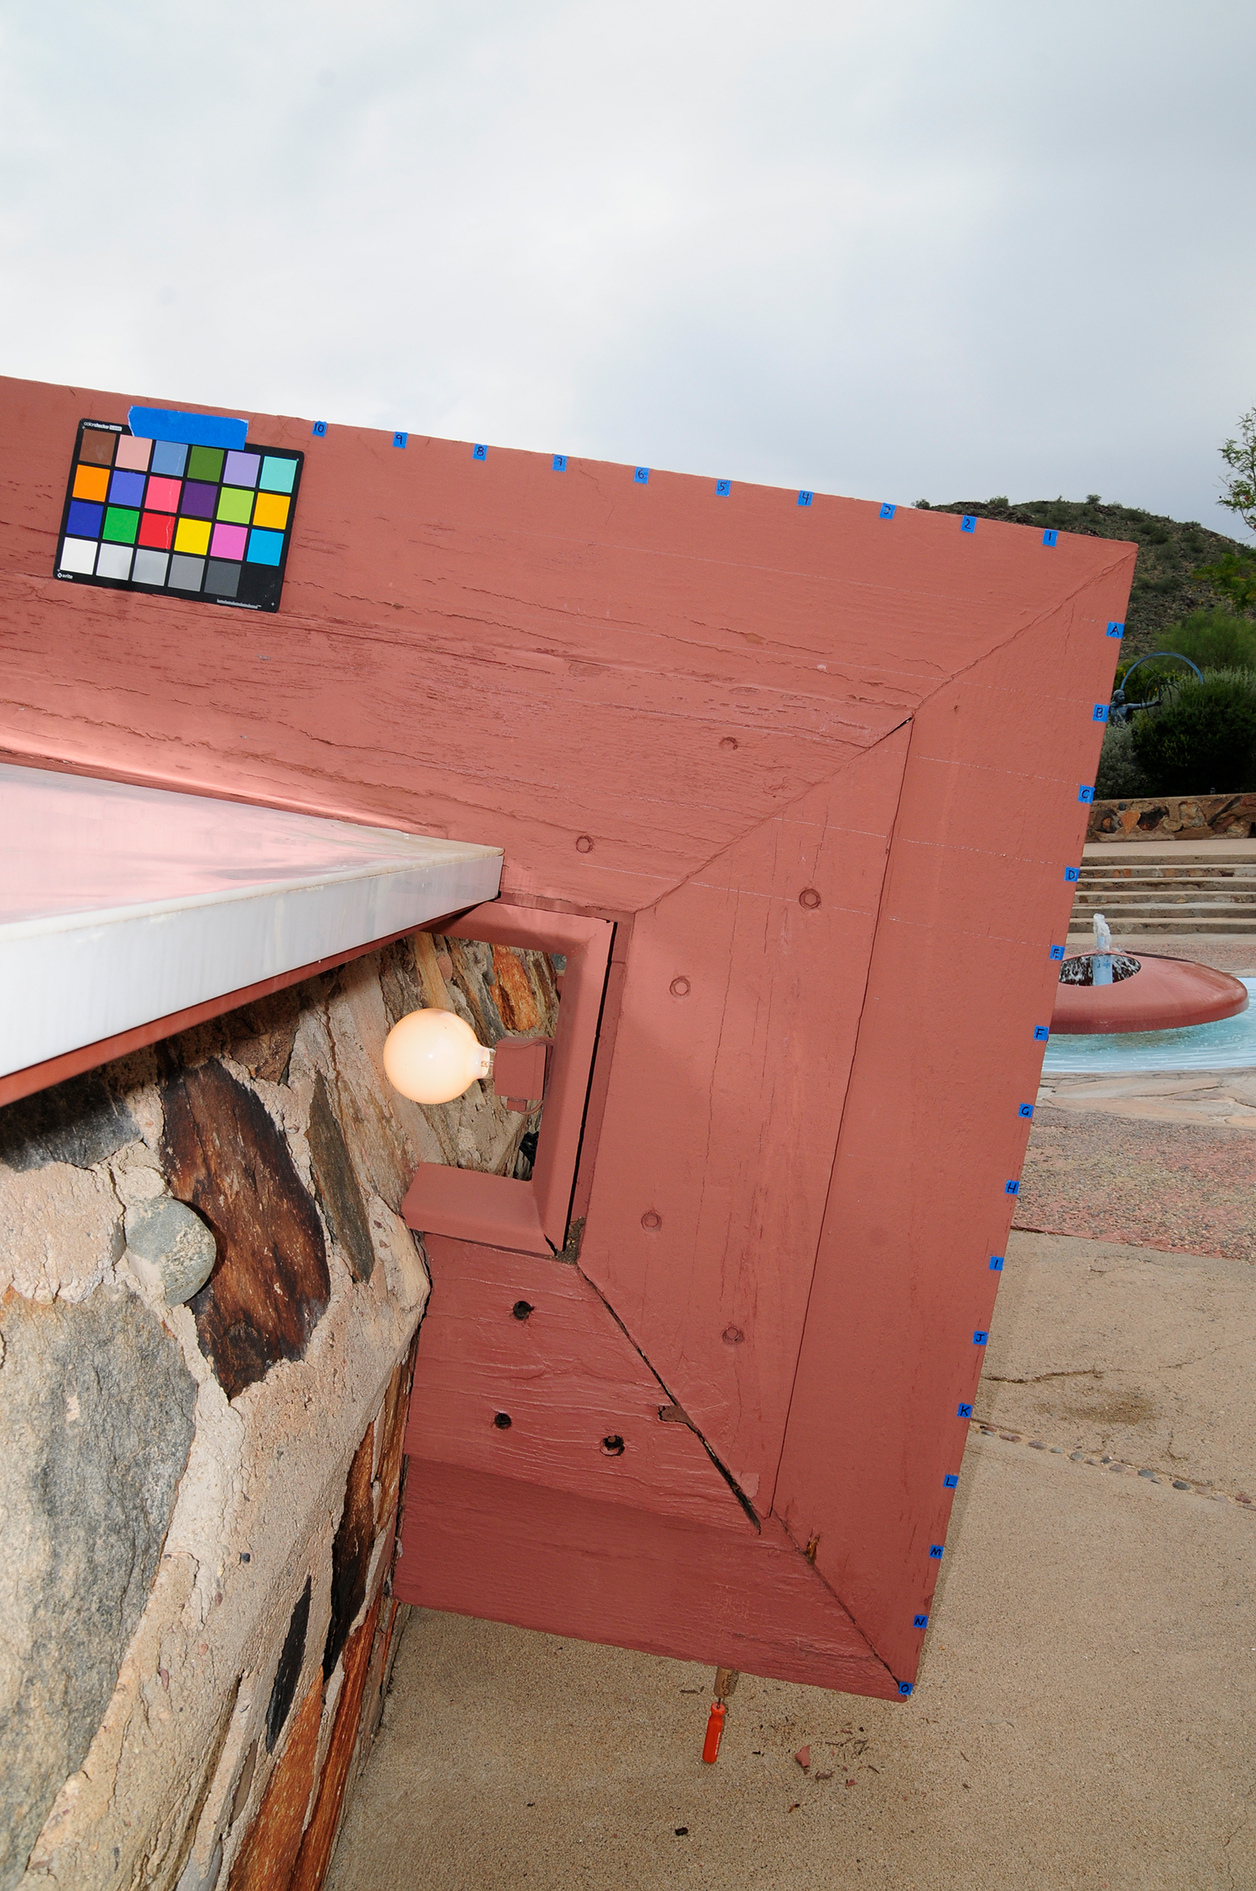 Working on section of roof at Taliesin West